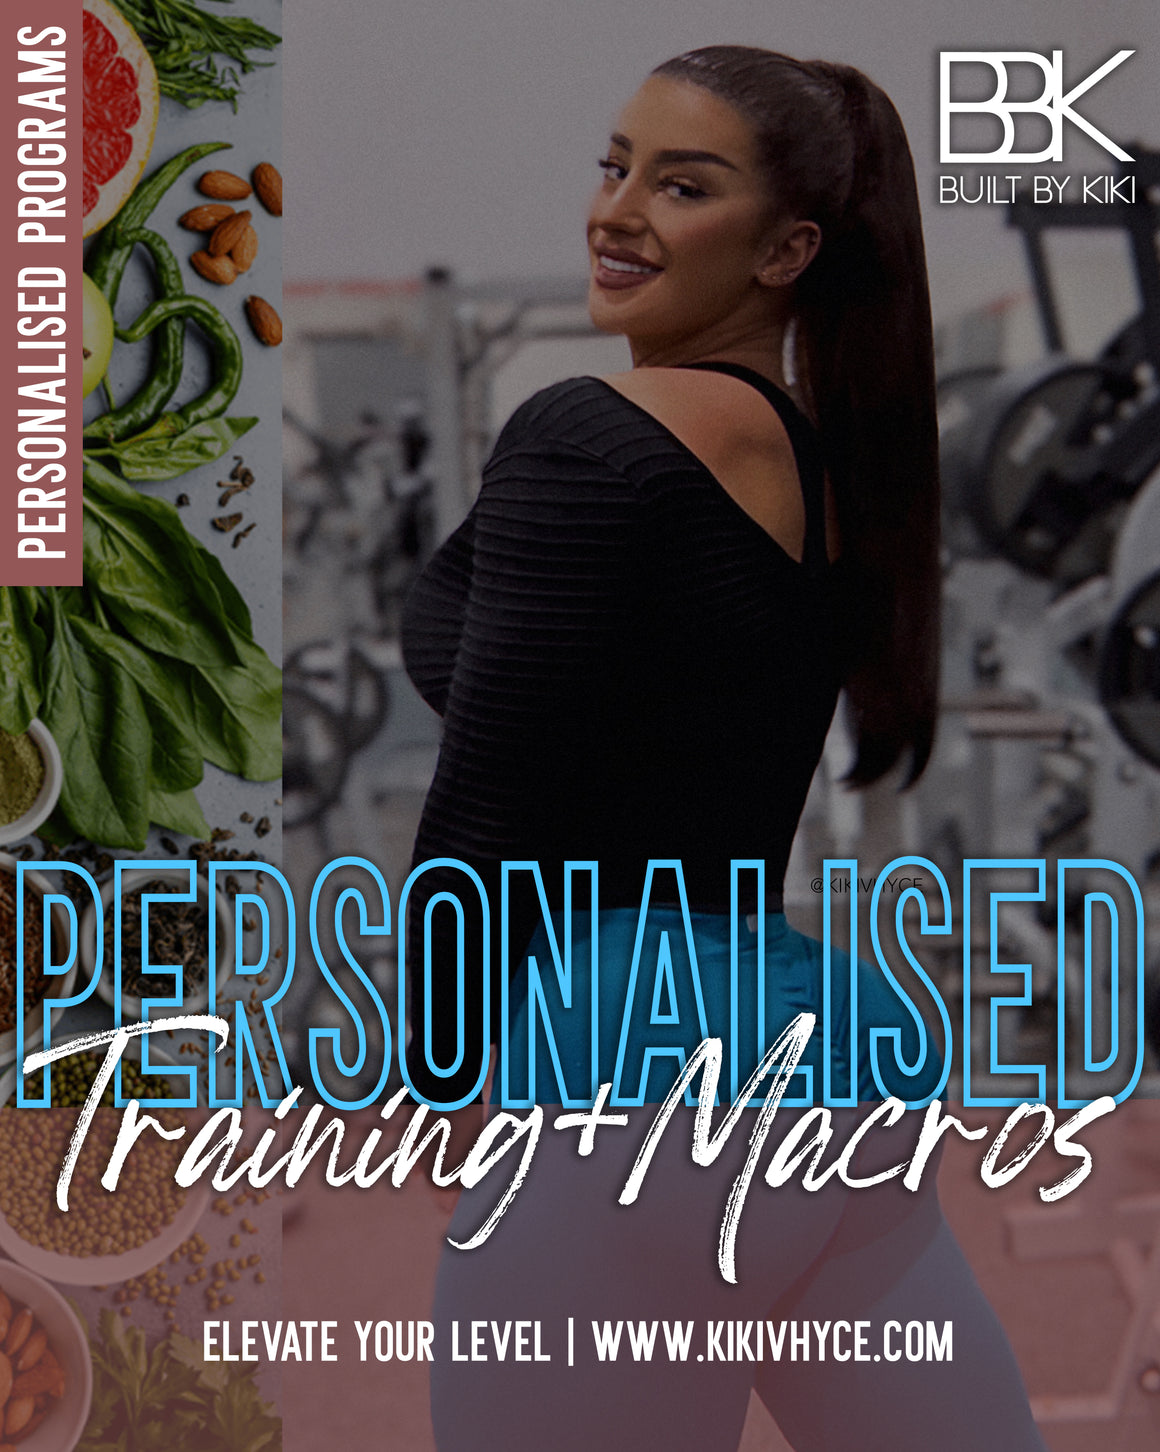 PERSONALISED PROGRAM: TRAINING + MACROS